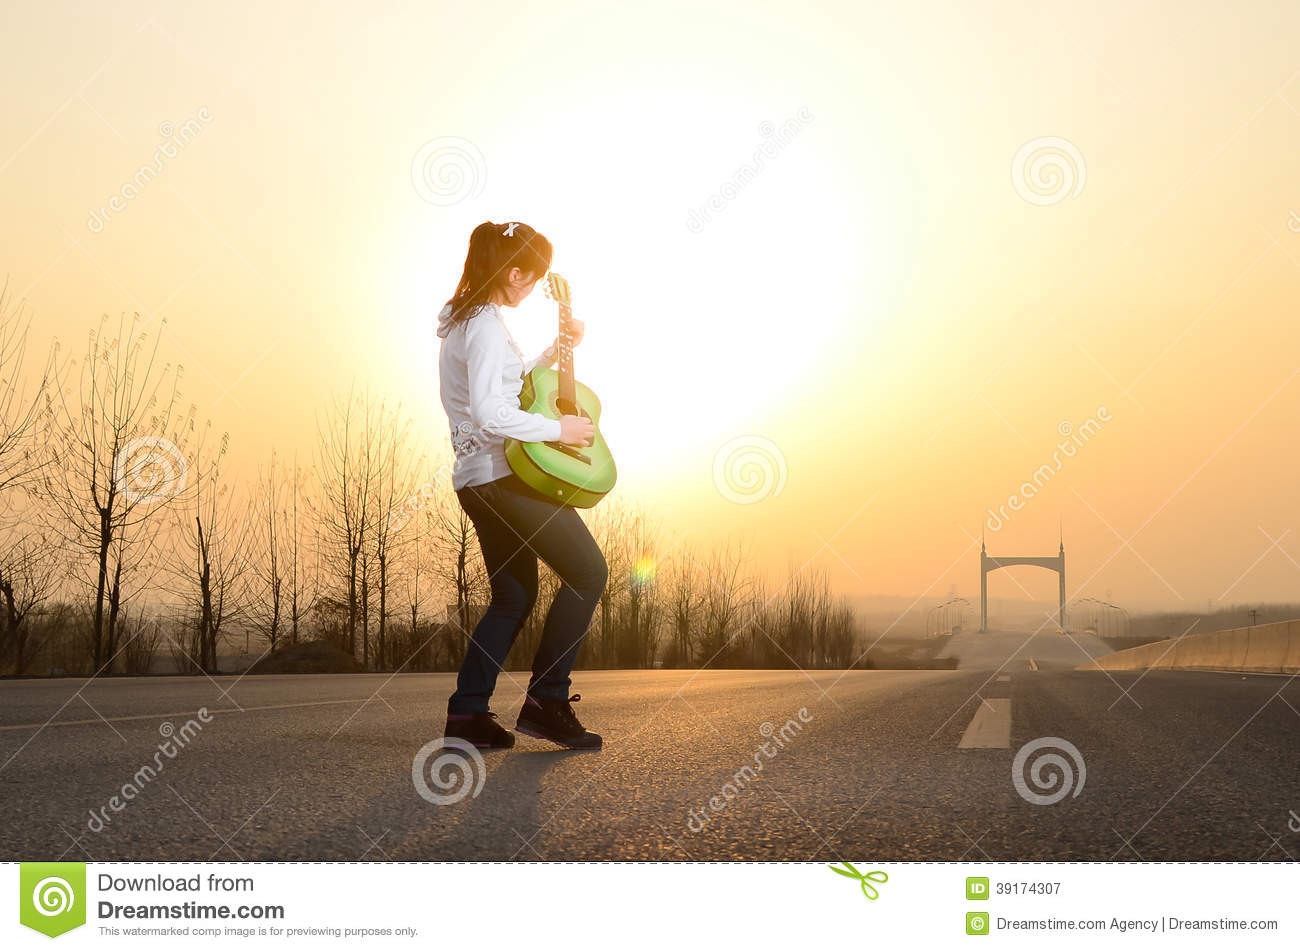 In the evening, girl playing guitar on the road